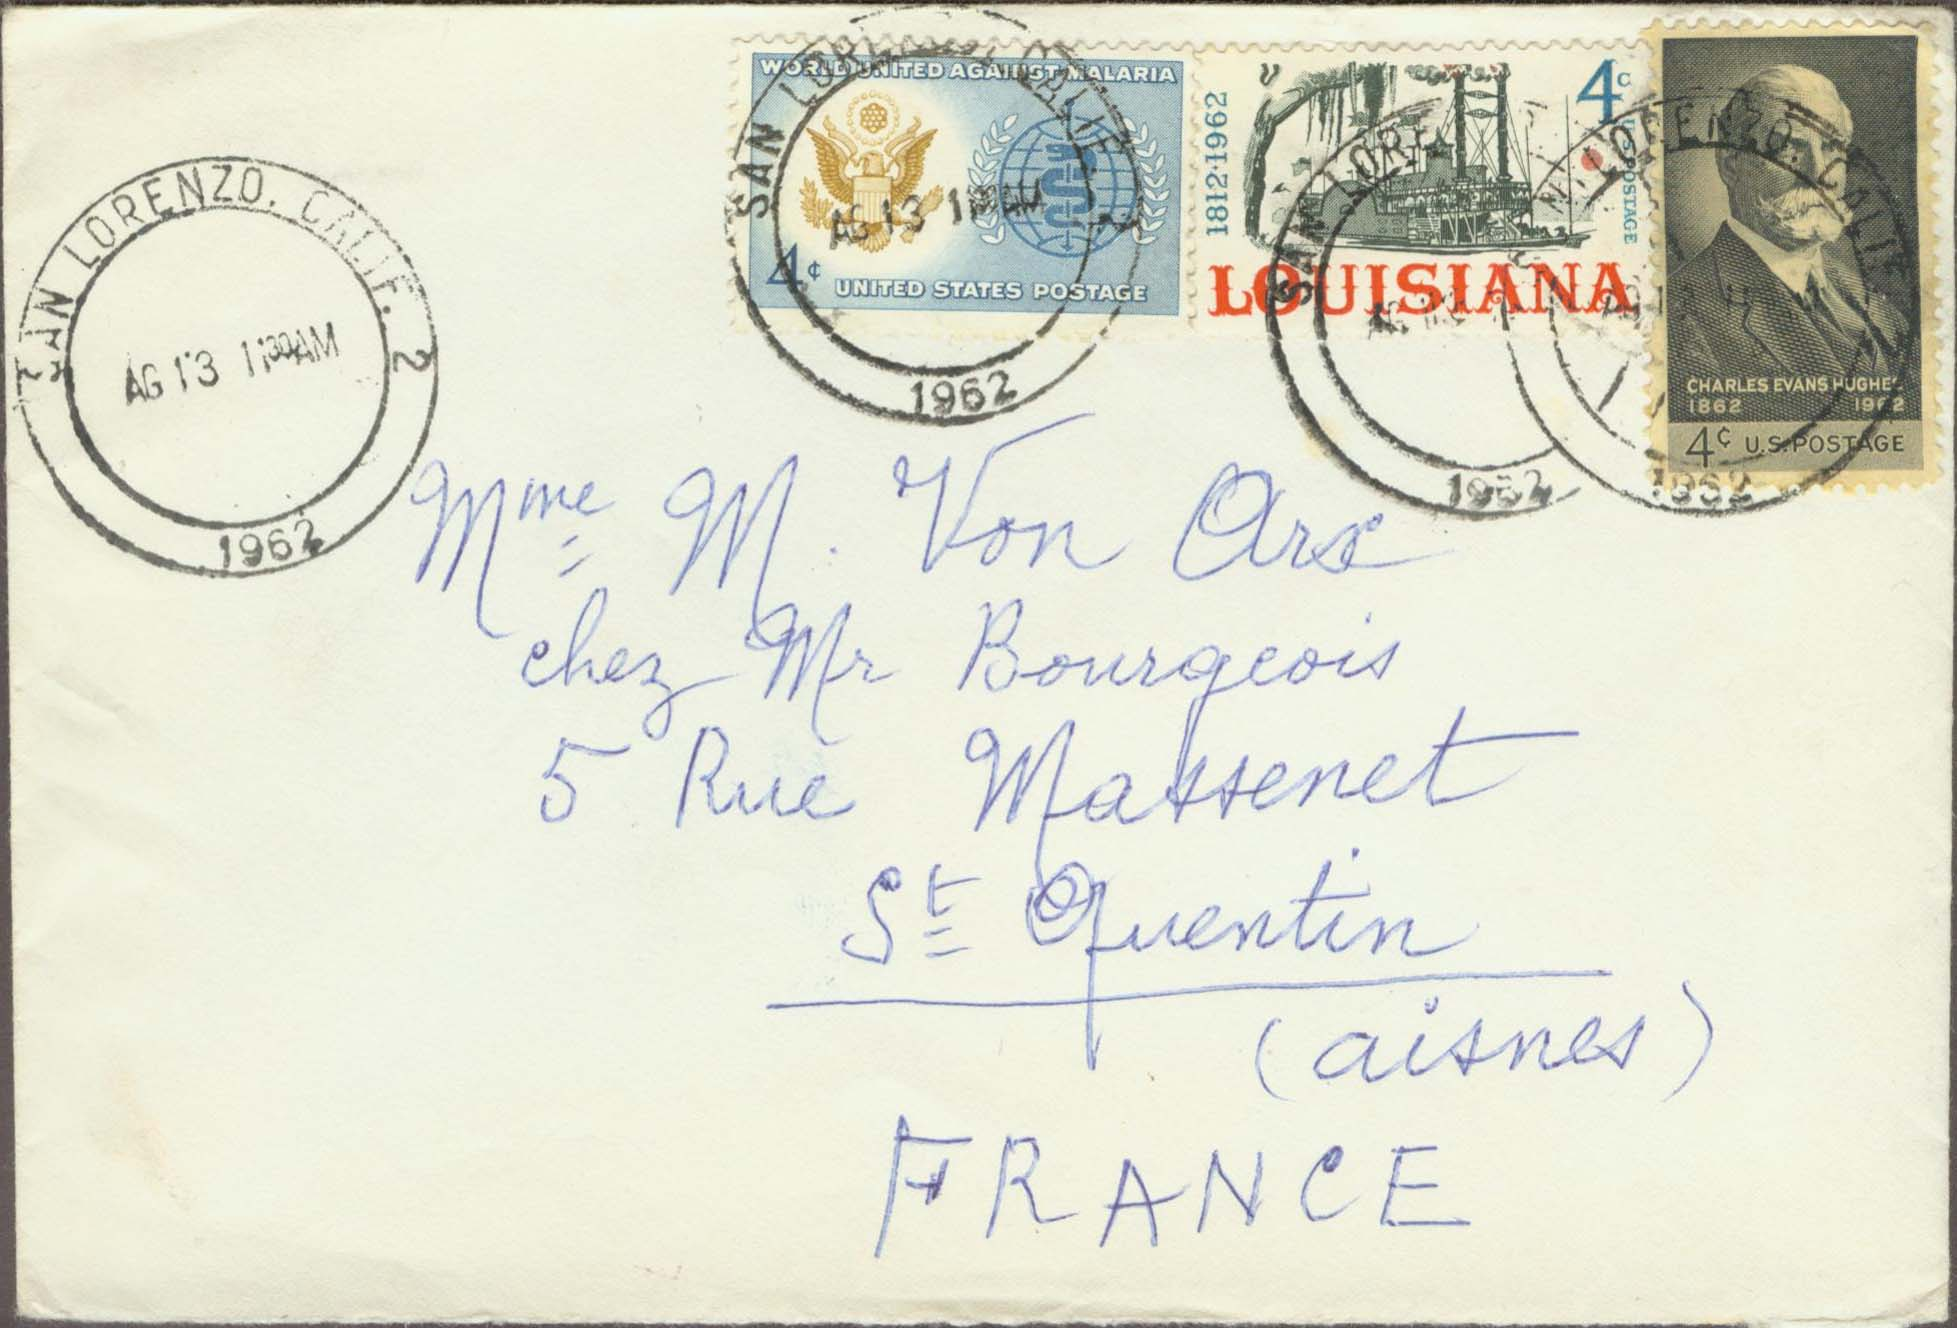 1962, August 13th. 11:30 AM. San Lorenzo, CA to France (Overpaid by 1¢)